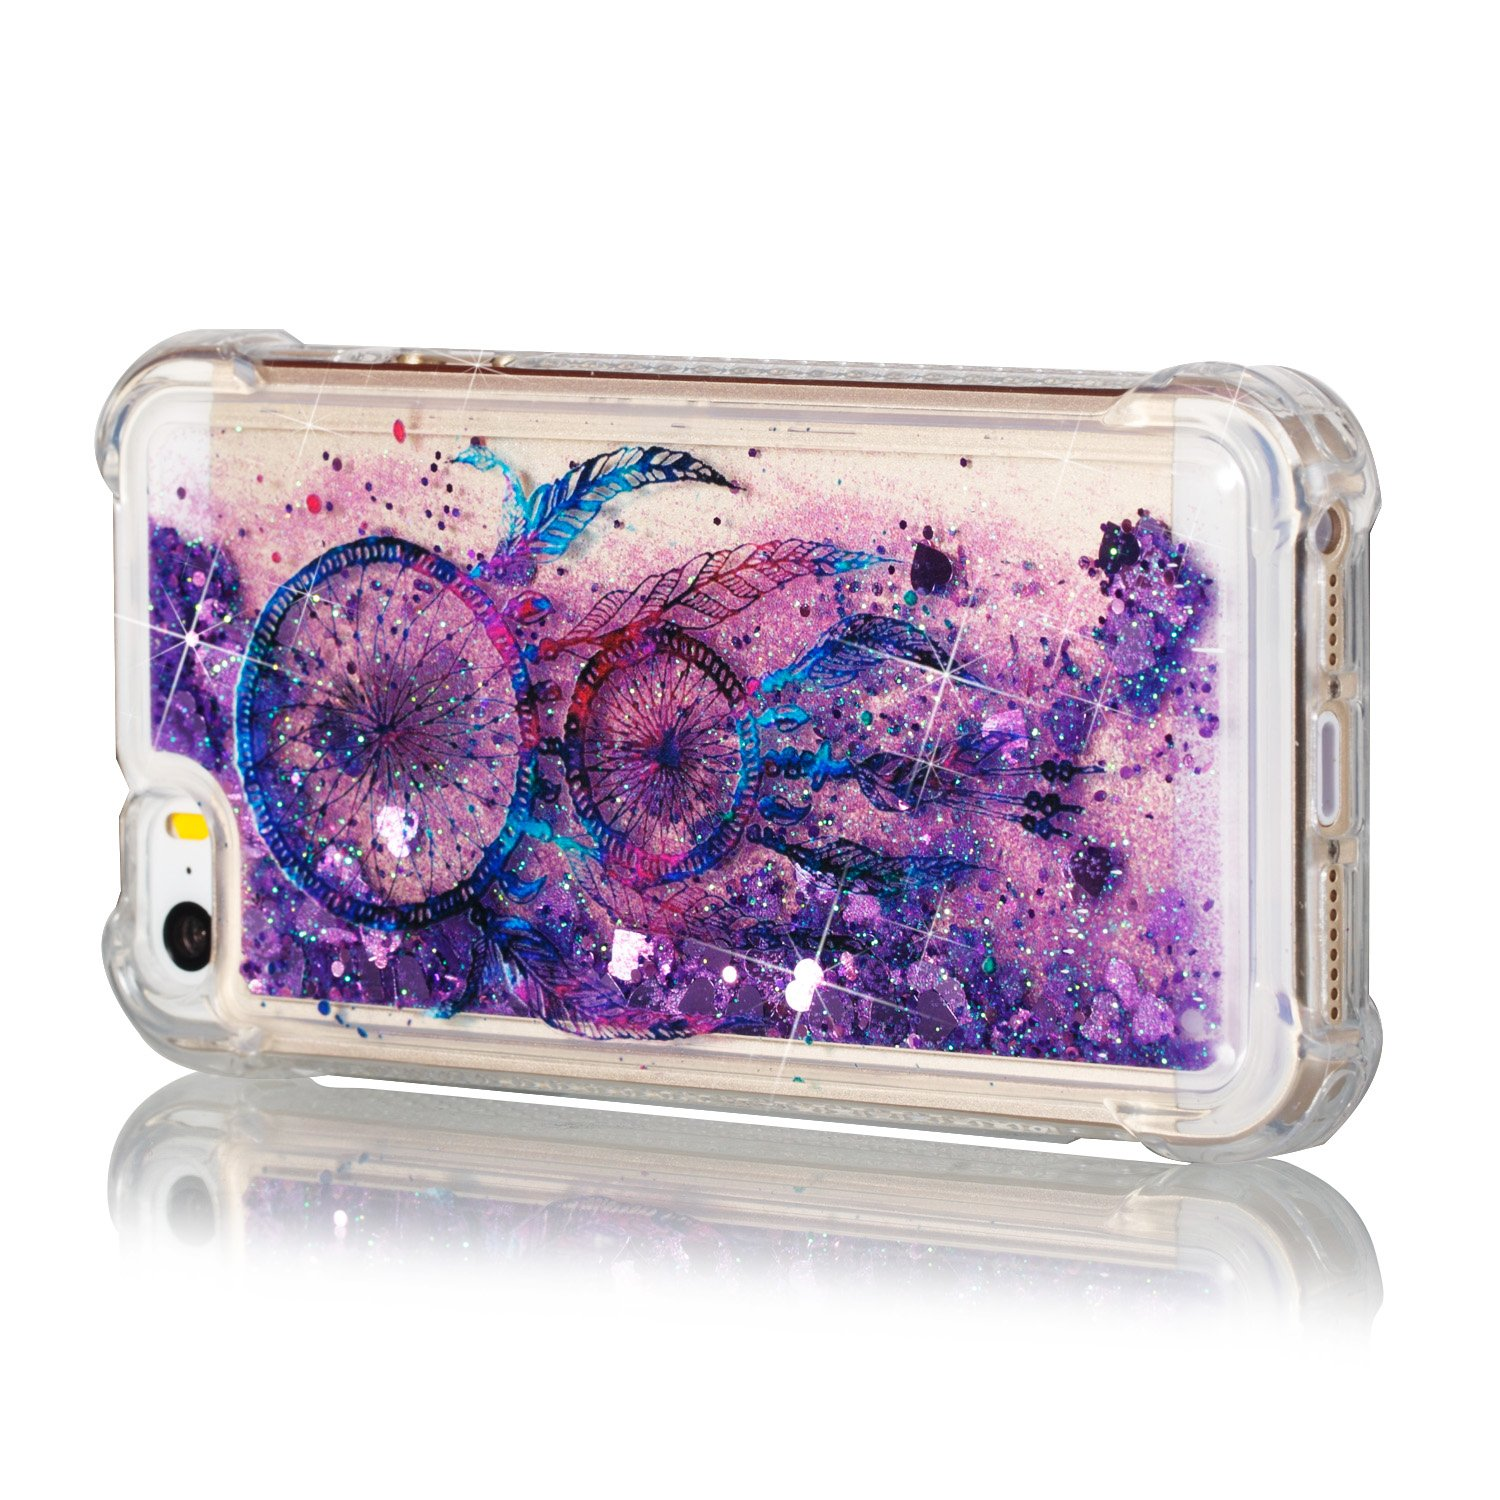 TOUCASA Funda iPhone 5S,Funda iPhone 5, Glitter Liquida Transparente TPU Silicona,Funda Móvil Case Líquido Quicksand Anti-arañazos Case Cover para iPhone ...